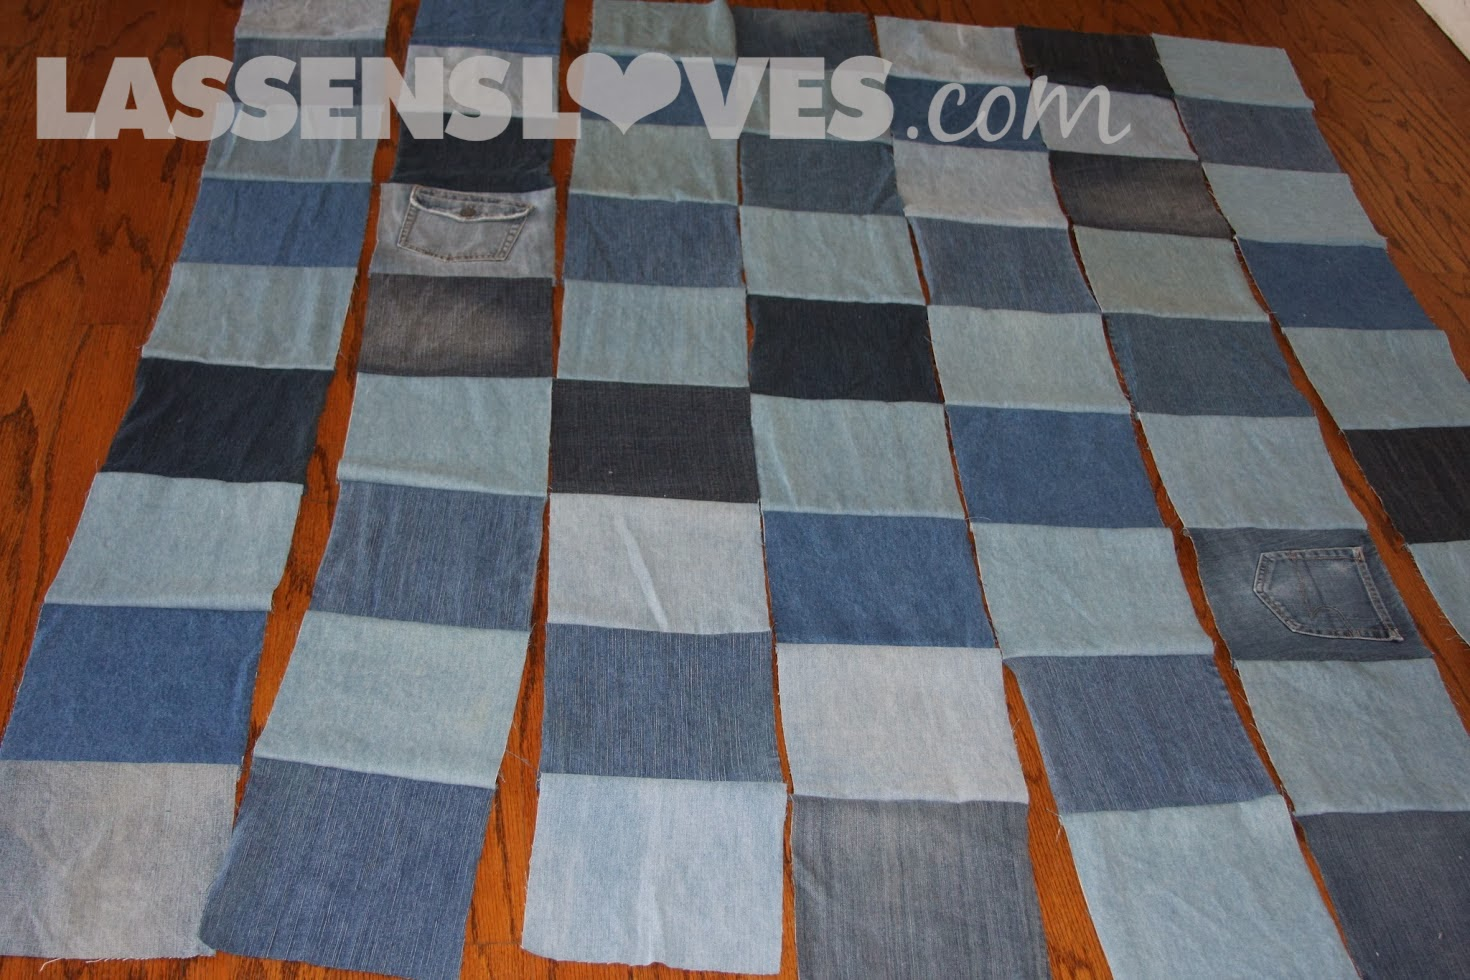 lassensloves.com, Lassen's, Lassens, jeans+blanket, denim+blanket, up+cycle